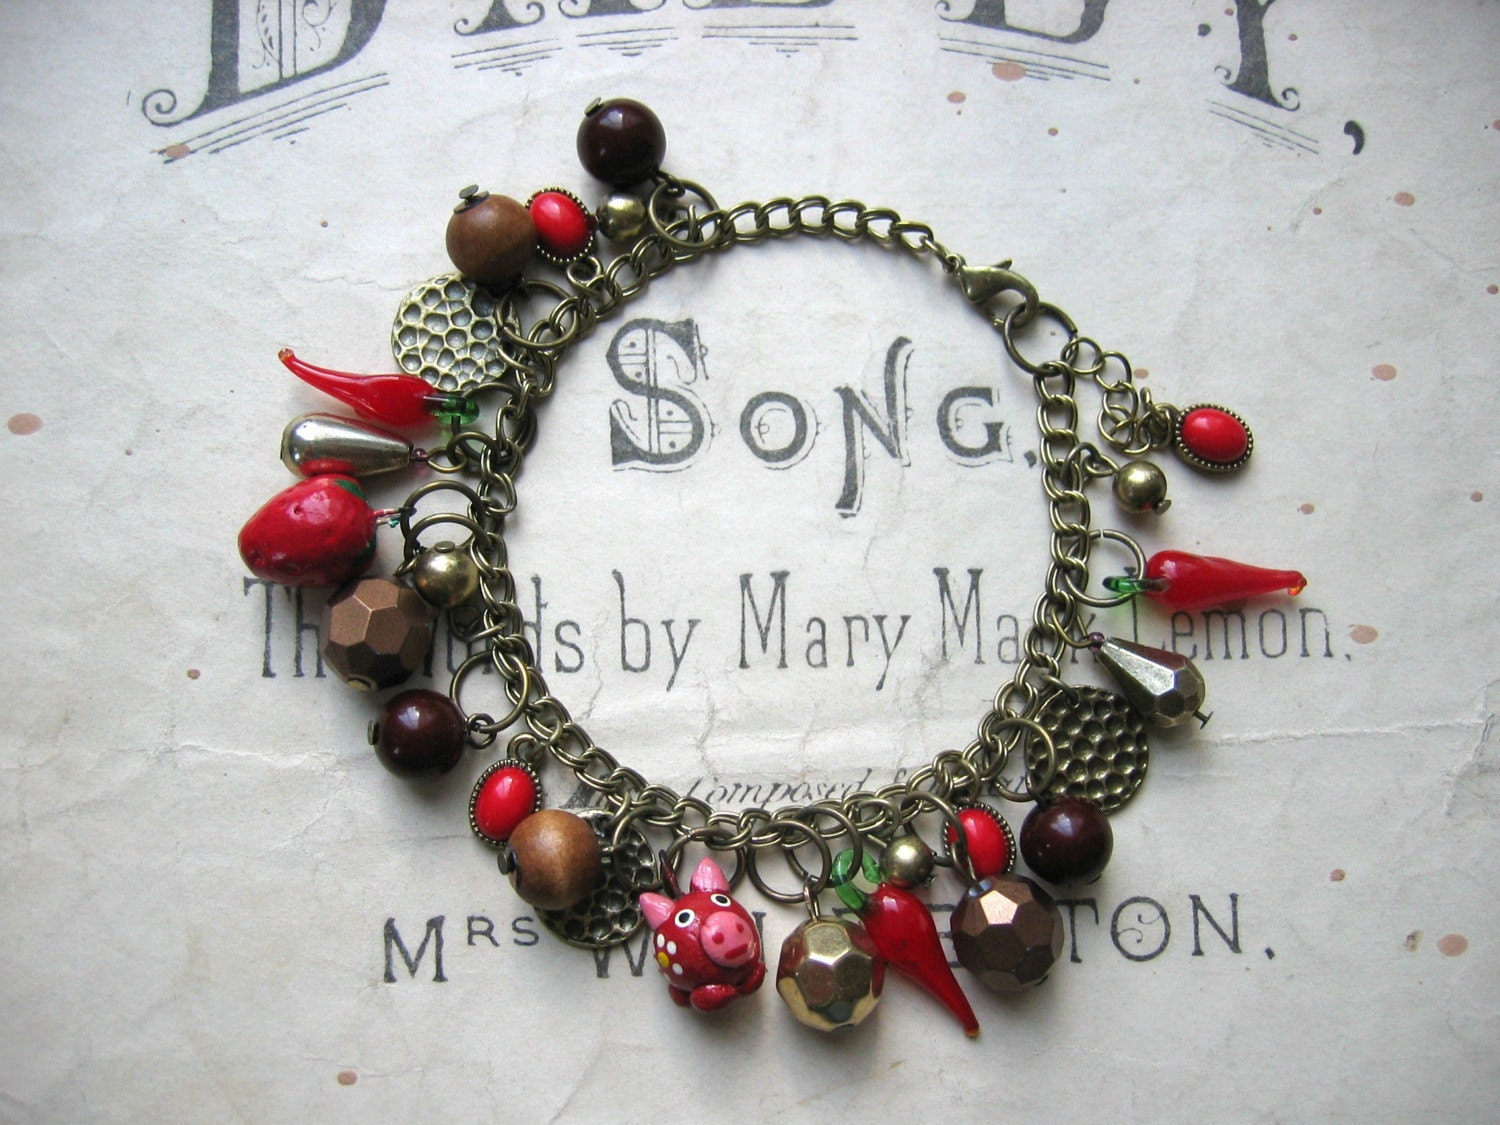 Hot and Spicy - charm bracelet